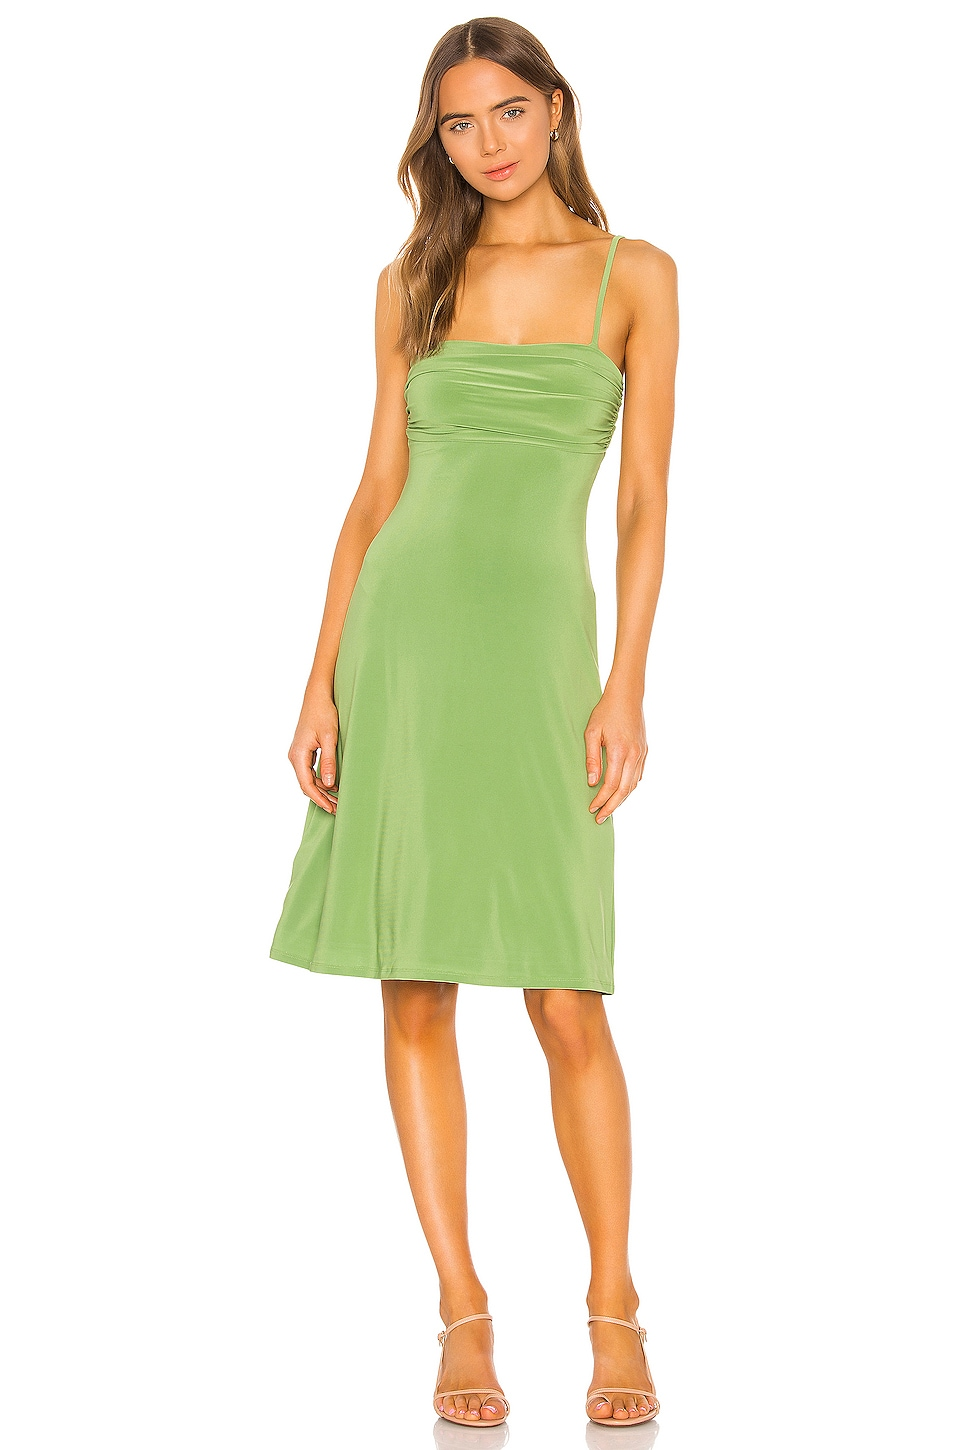 Song of Style Finnick Midi Dress in Moss Green